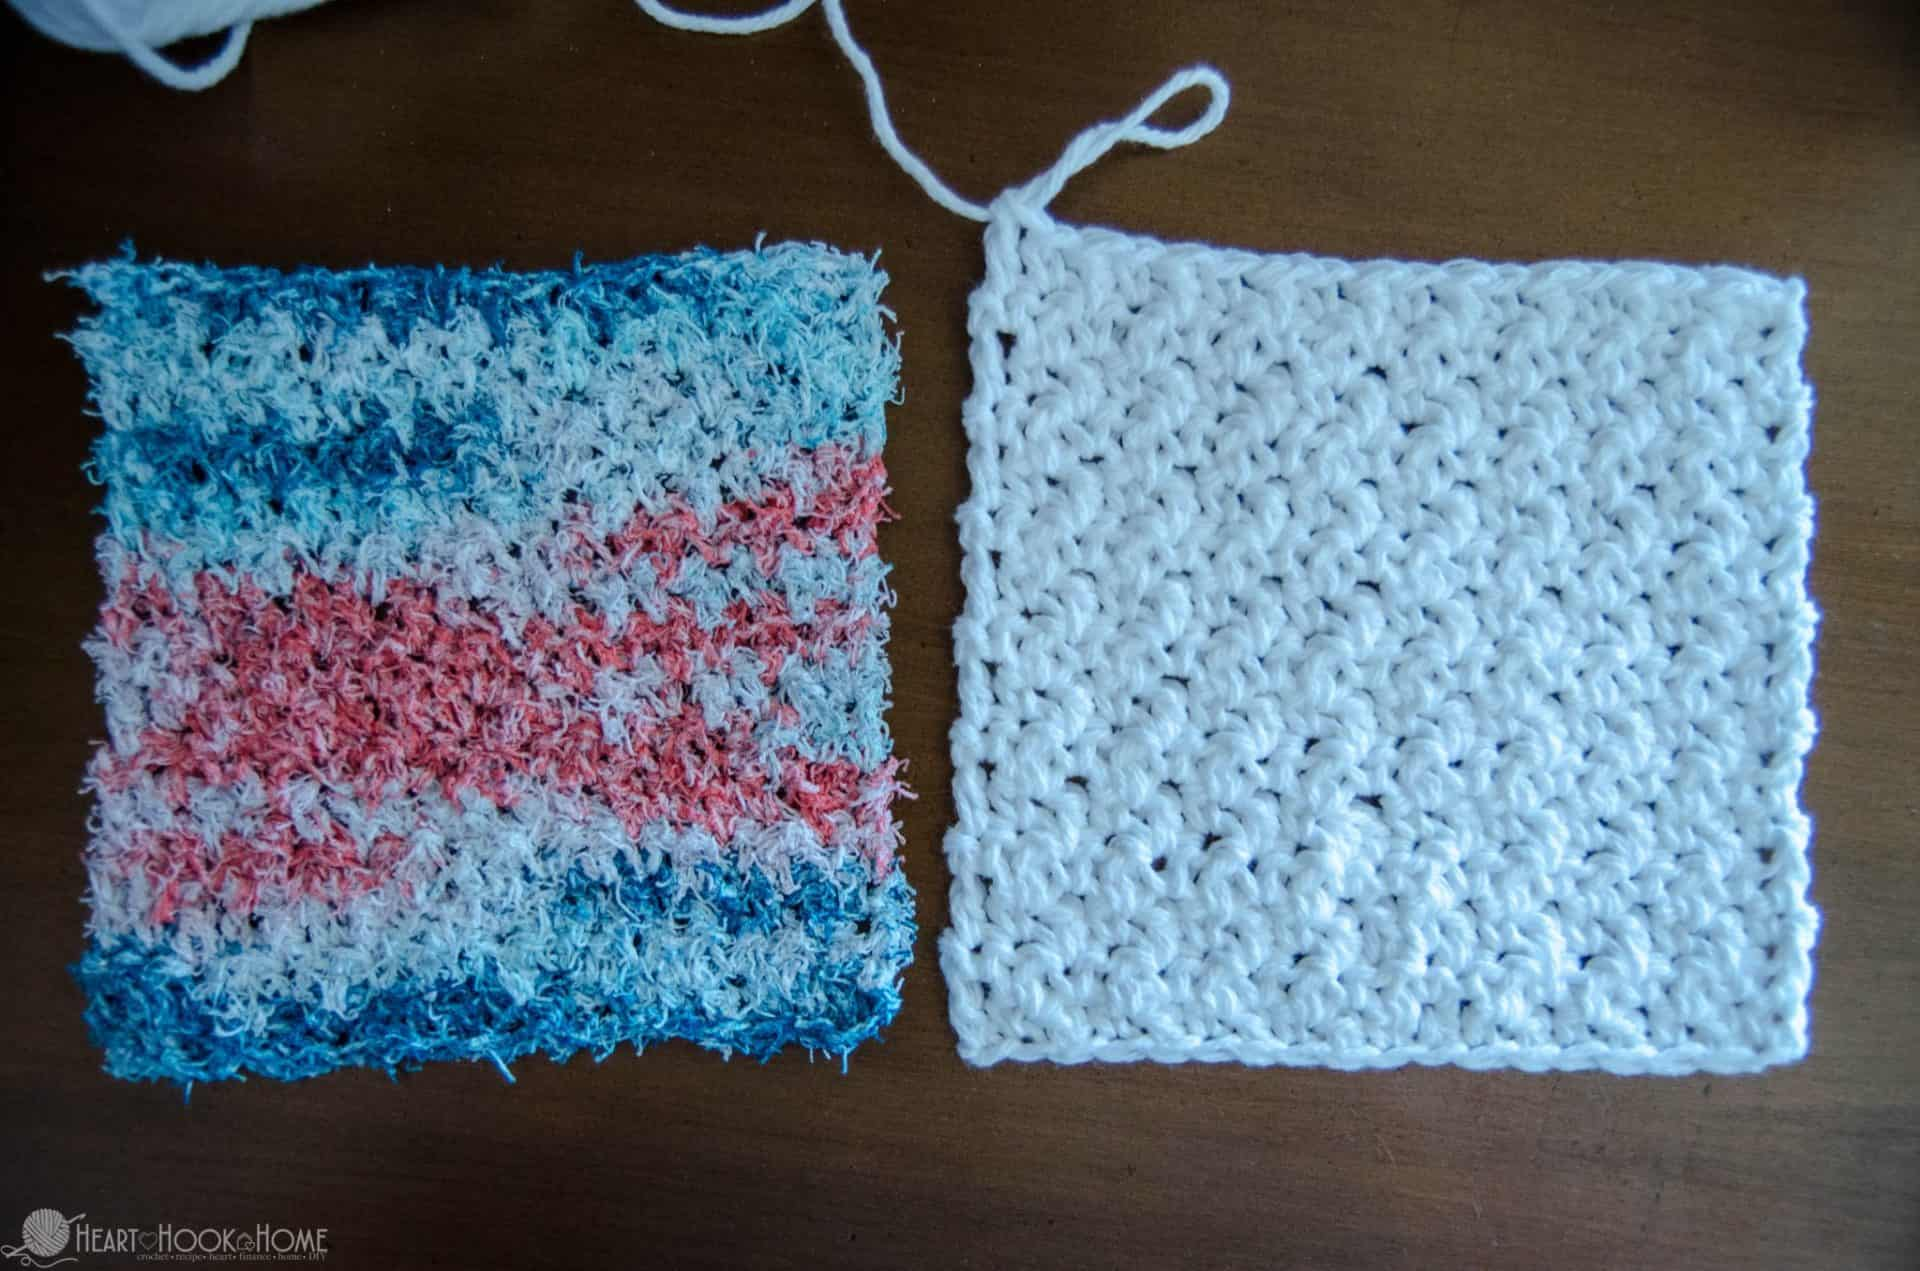 Two-Sided Dishcloth crochet pattern